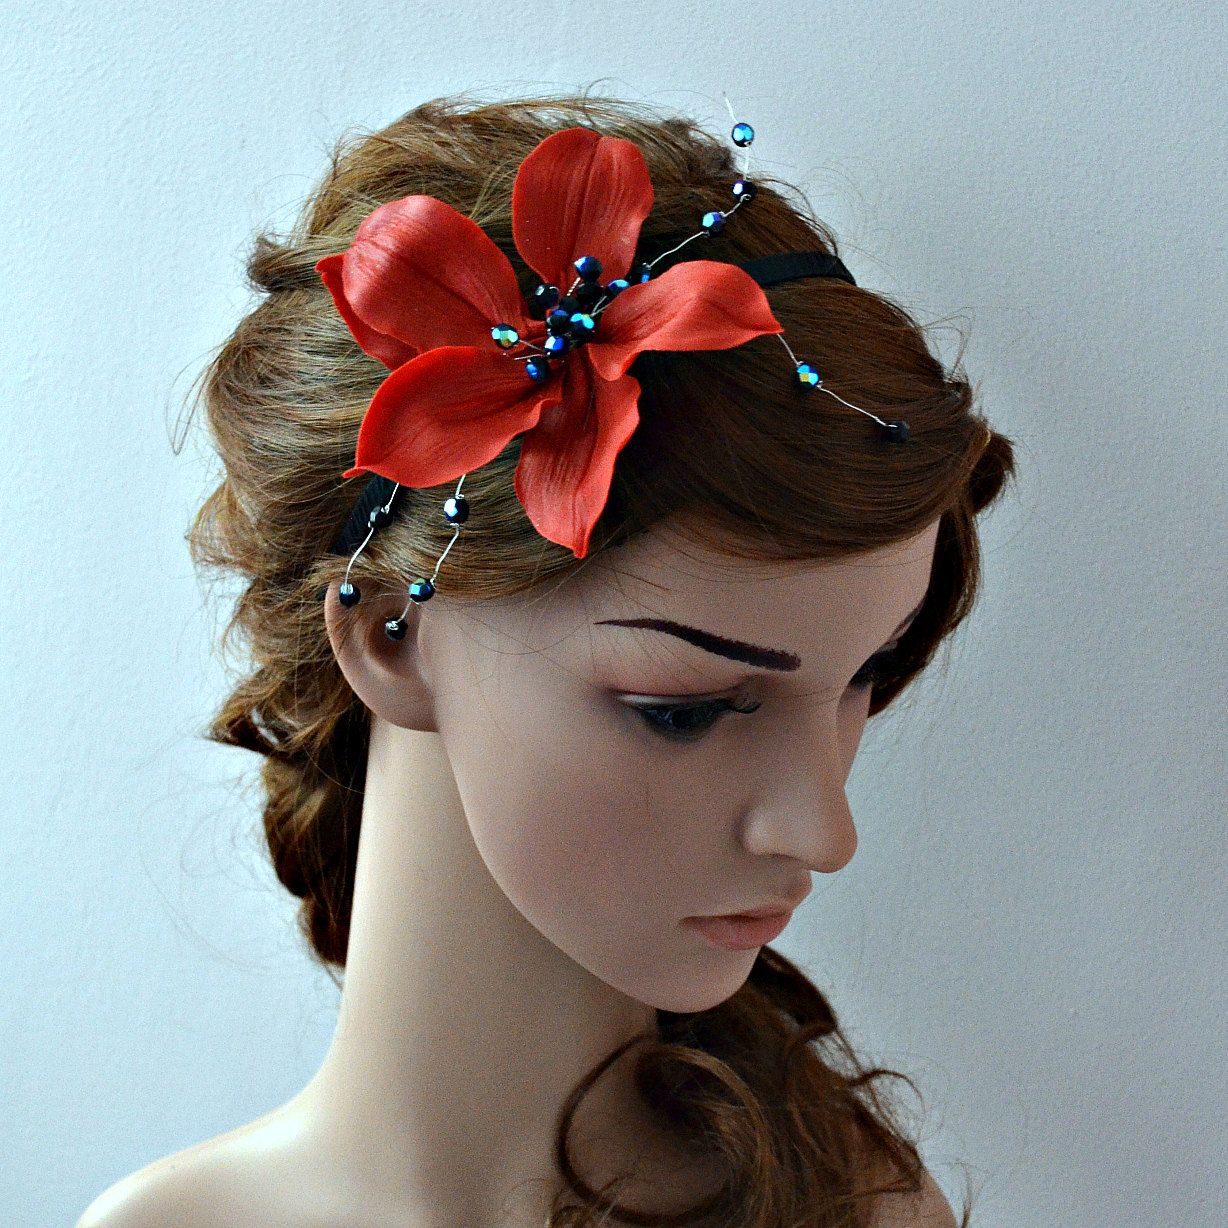 lily flower headband, rockabilly hair accessories, black end red